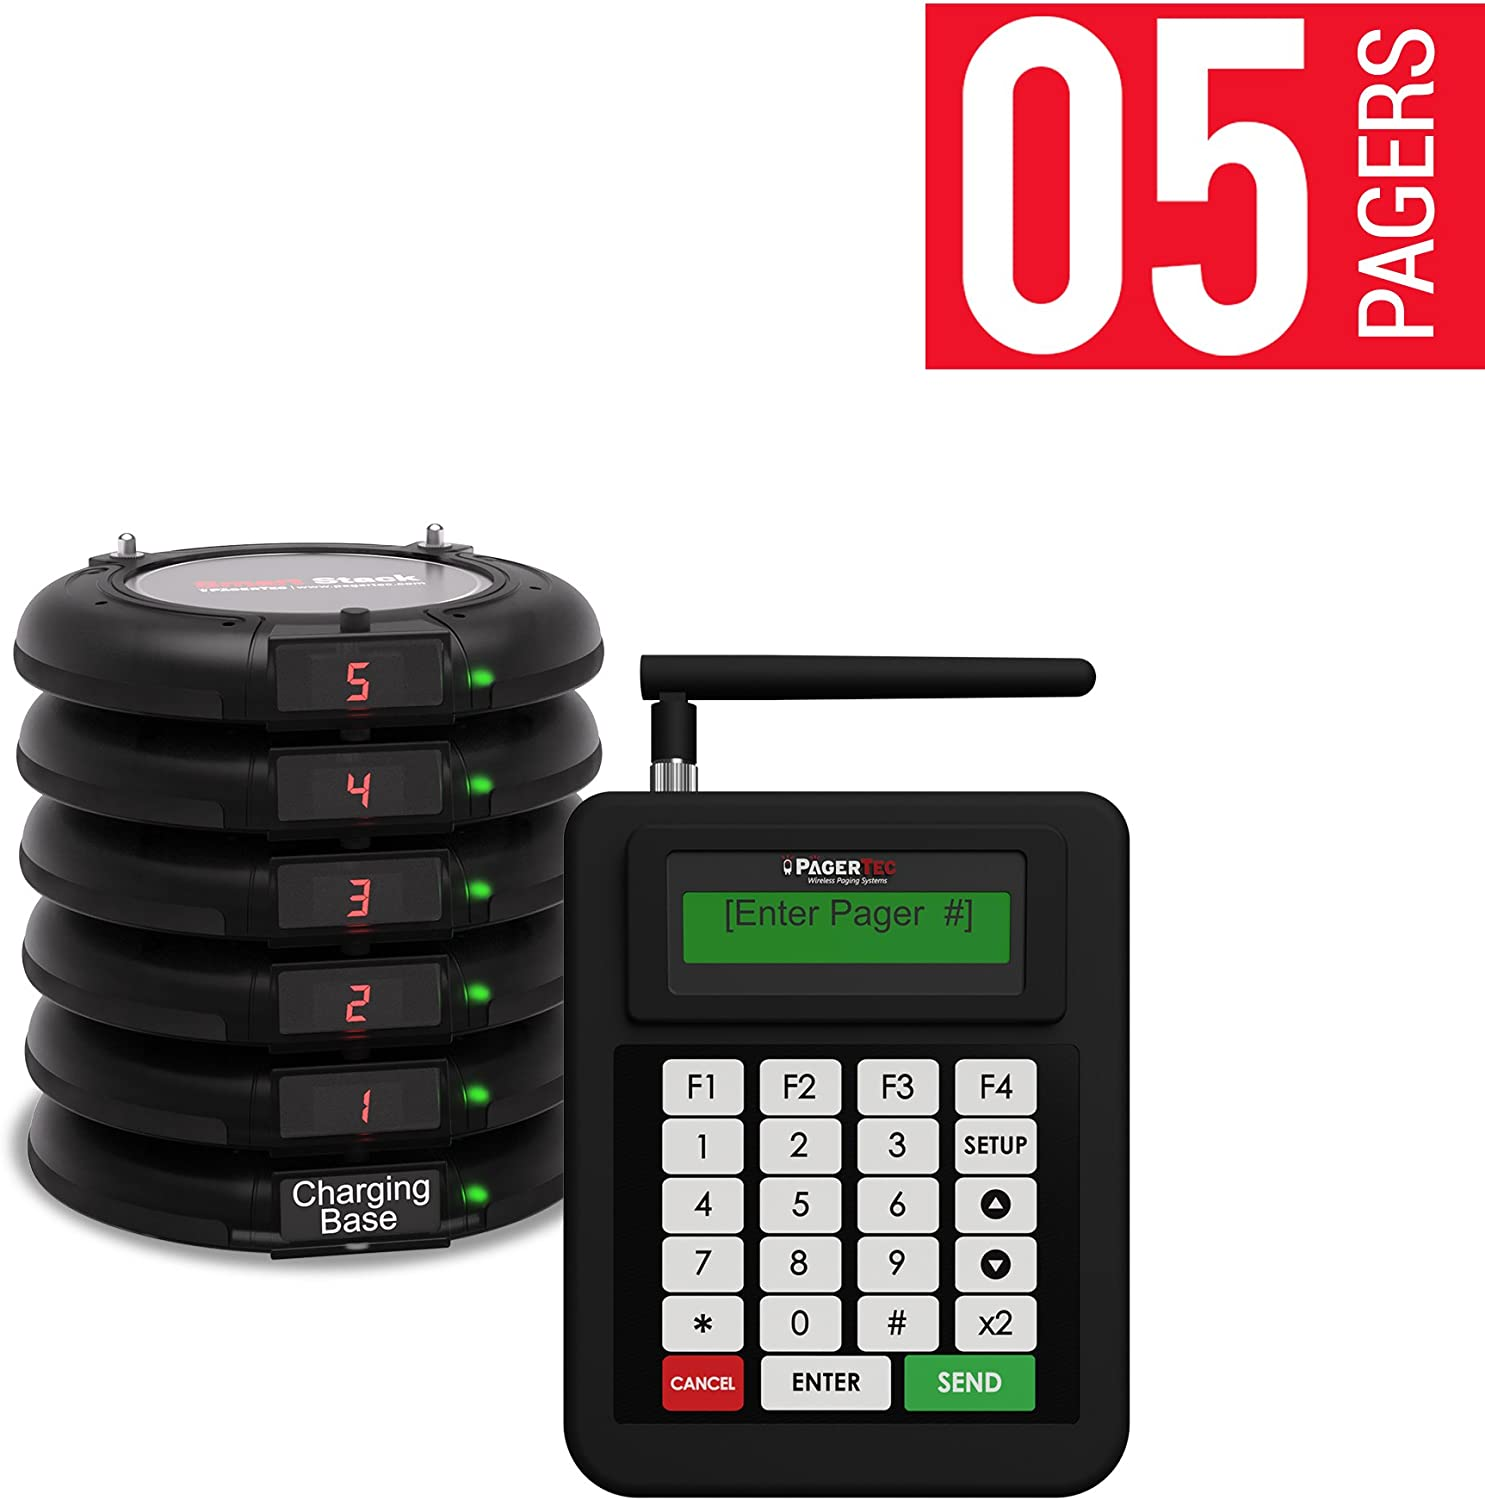 Pagertec Complete Coaster Paging System For Restaurants, Hospitals & Hotels | Consists of 1 Transmitter, 1 Charging Base & Long Range Pagers (Set of 5 Units) | Up To 2 Miles Range